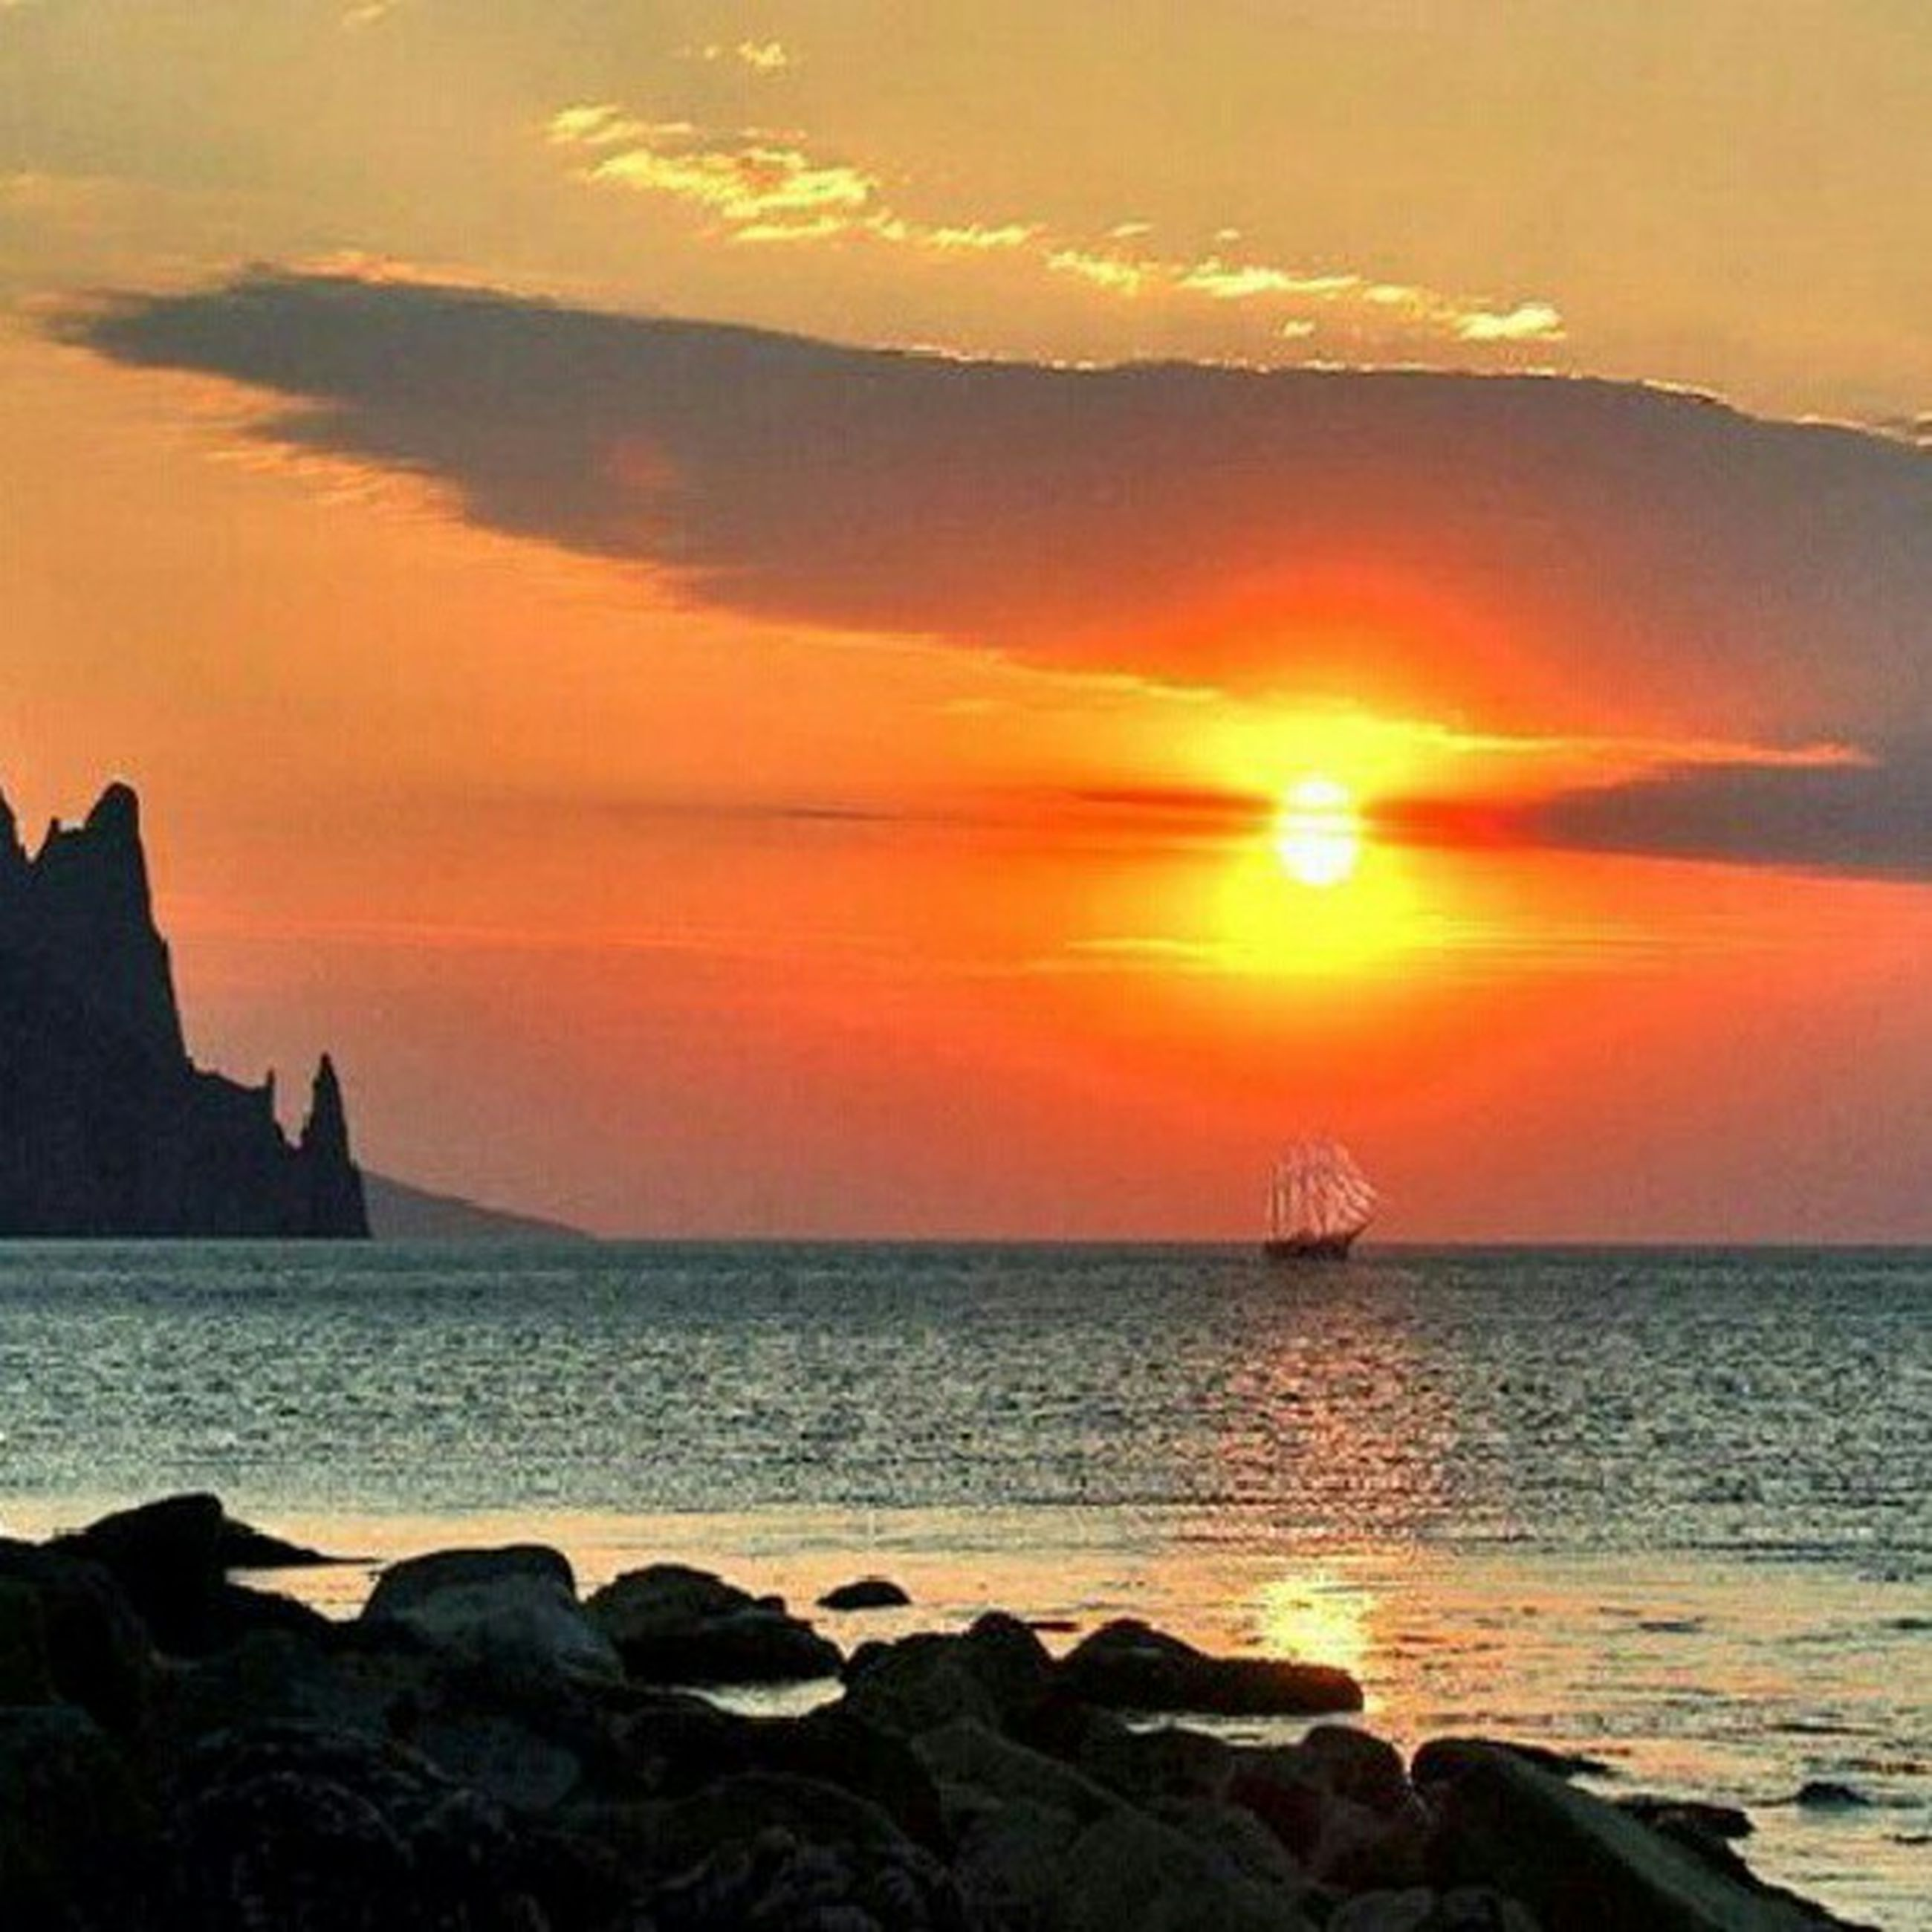 sunset, sea, horizon over water, water, scenics, beauty in nature, orange color, tranquil scene, tranquility, sky, rock - object, sun, idyllic, nature, beach, rock formation, shore, silhouette, cloud - sky, rock